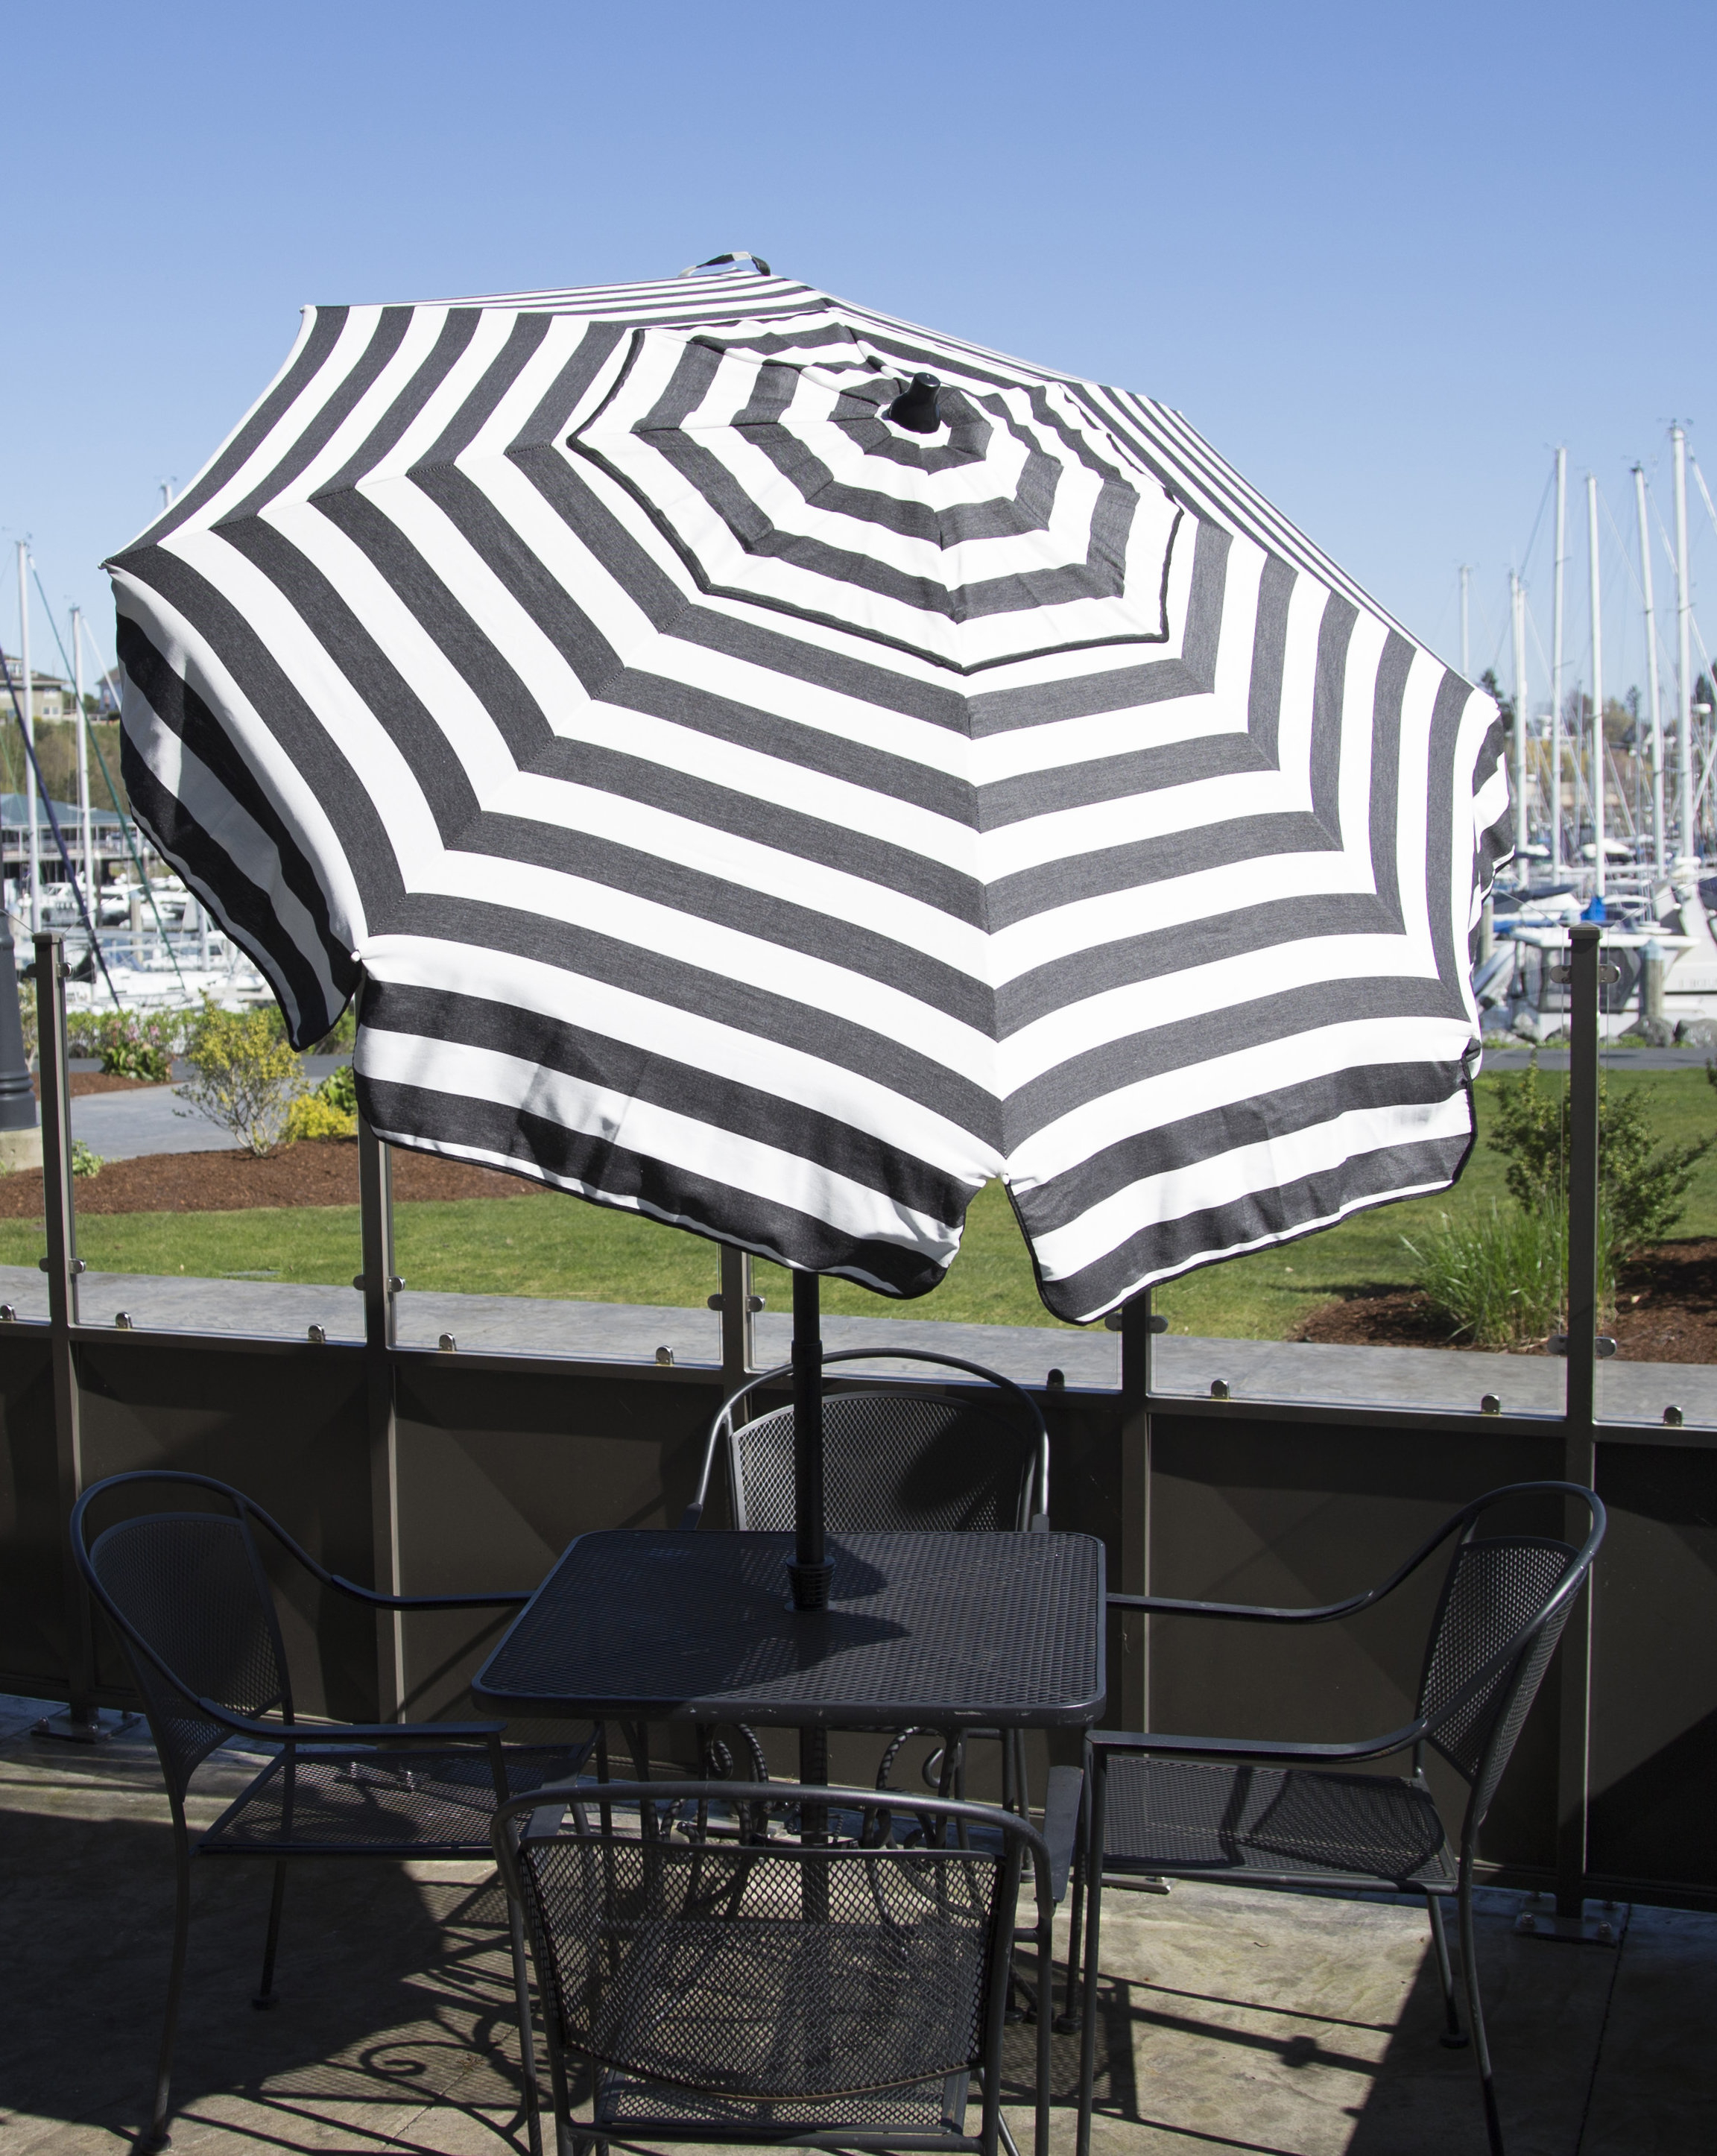 Well Known Italian Drape Umbrellas Pertaining To Italian 6' Market Umbrella (View 4 of 20)